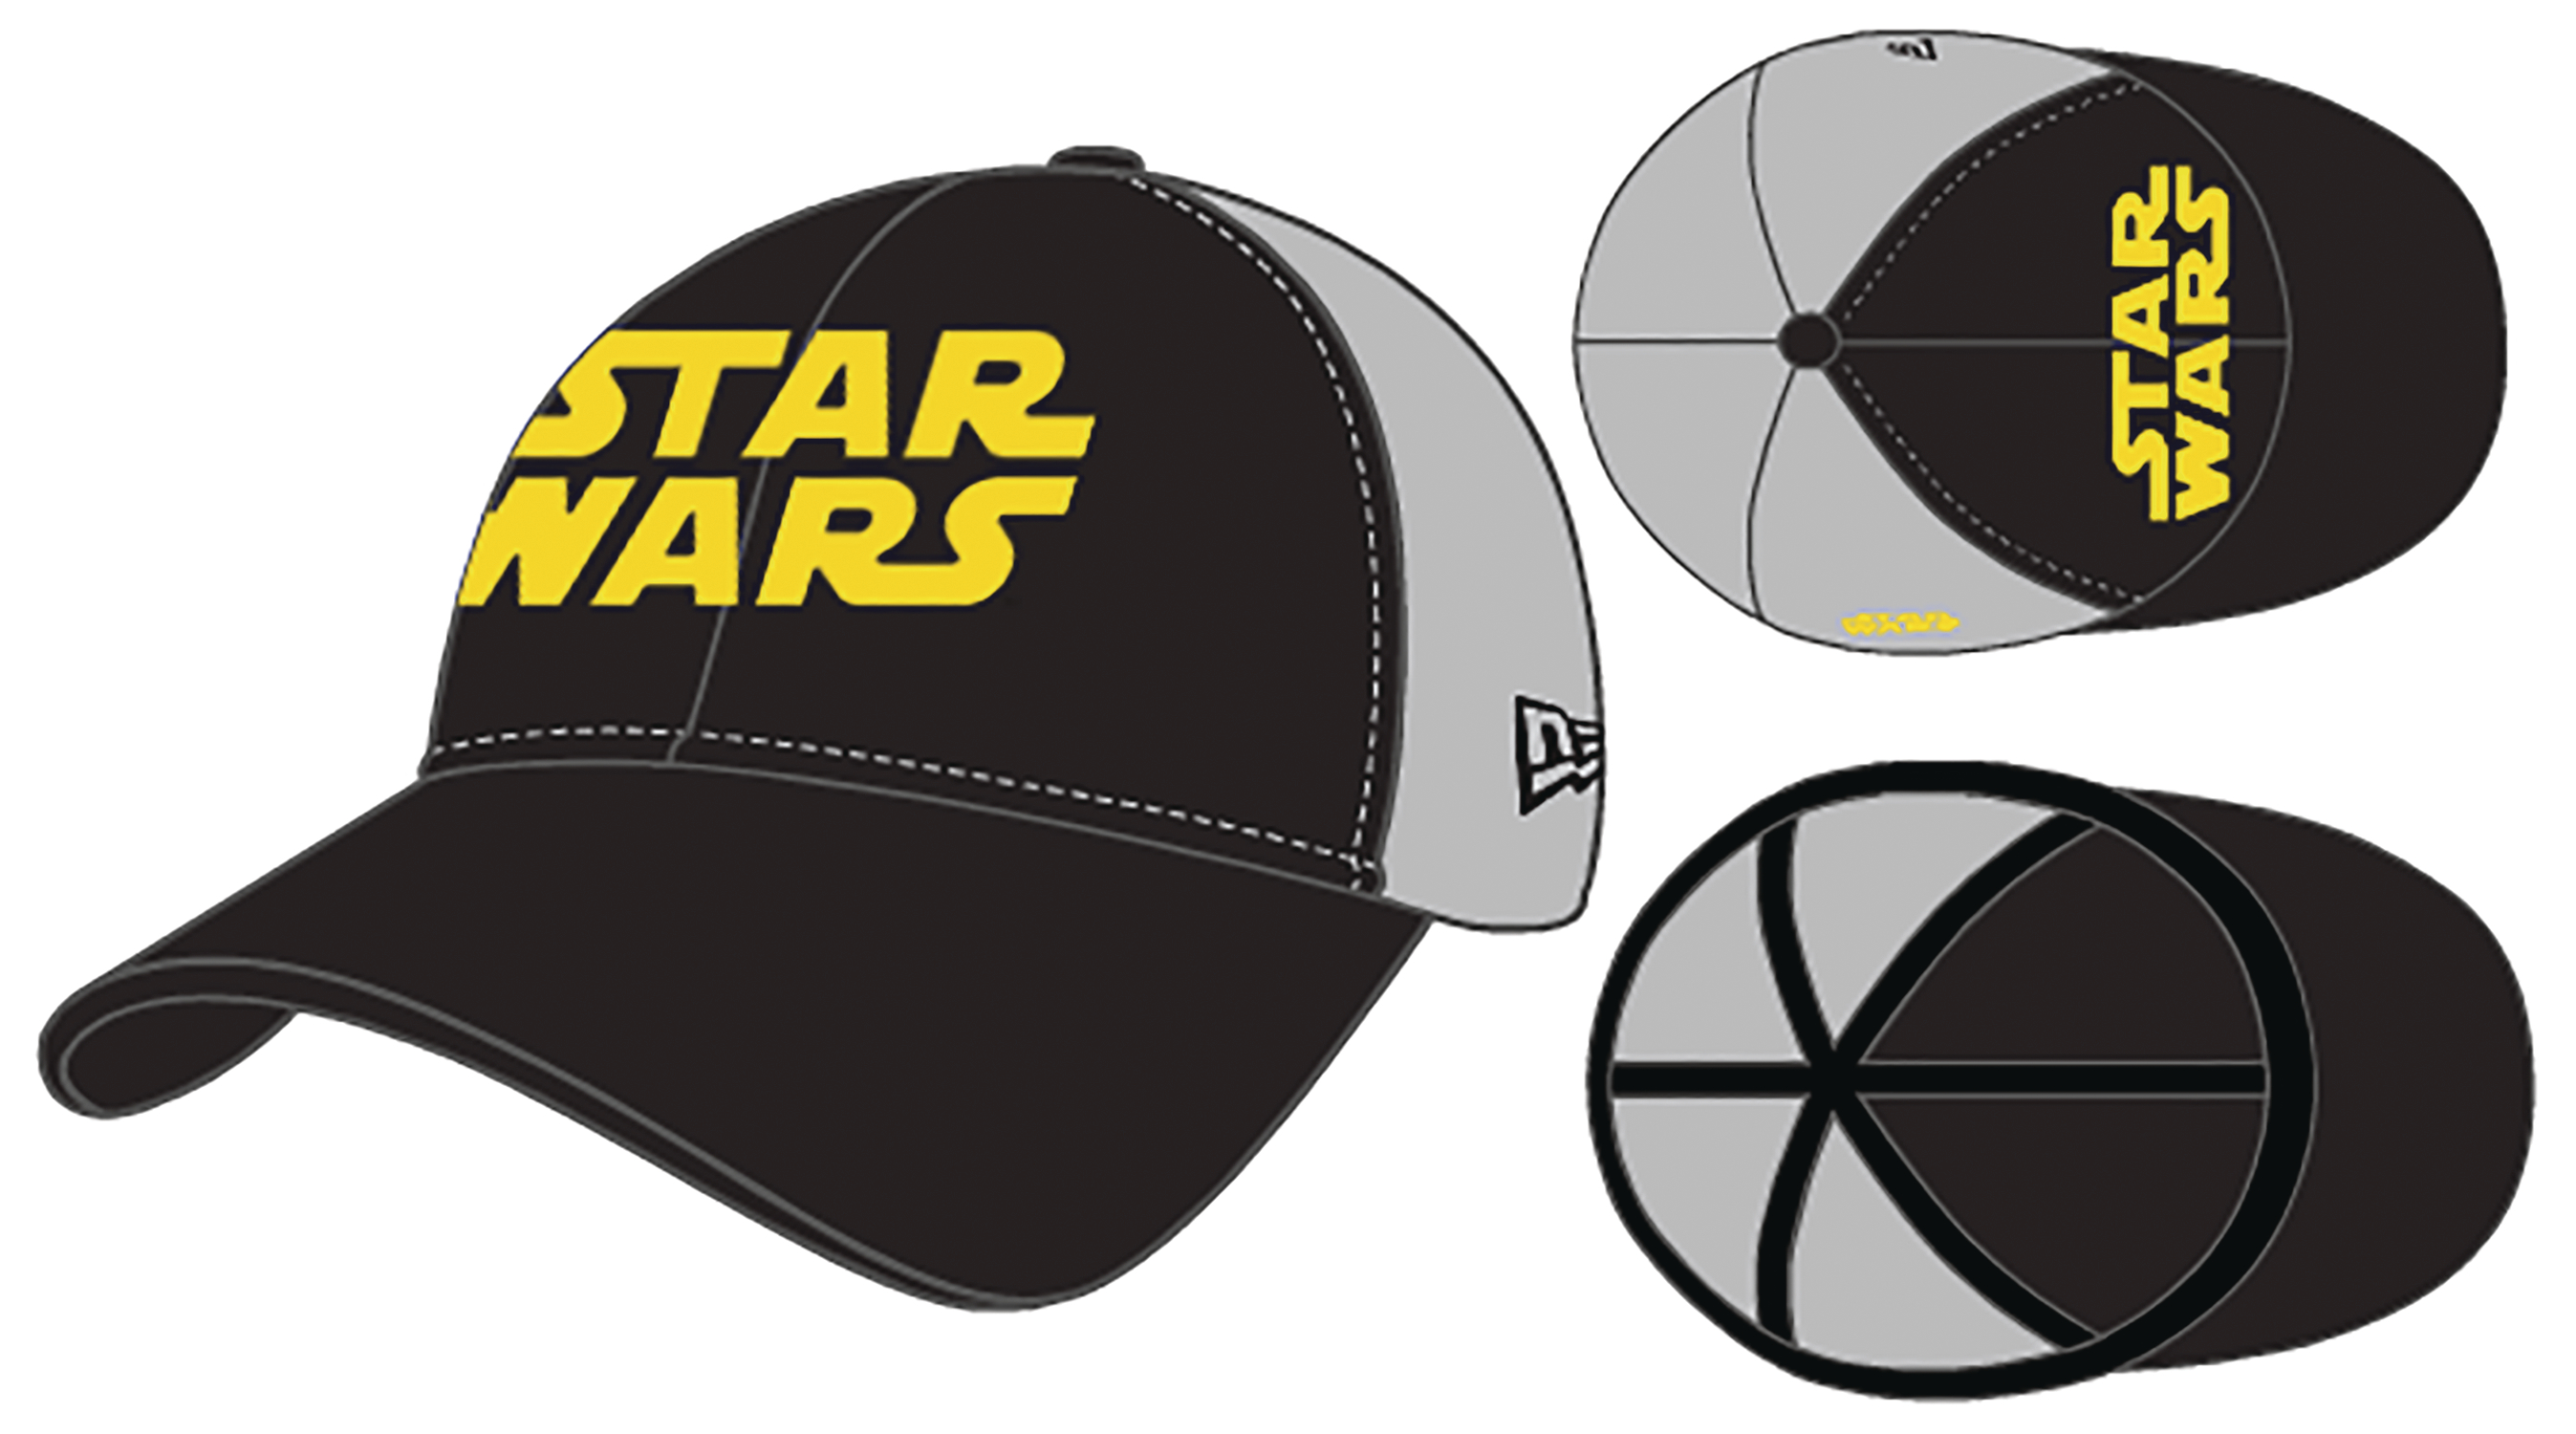 STAR WARS PX BLACK & GRAY 2 TONE 3930 FLEX FIT CAP